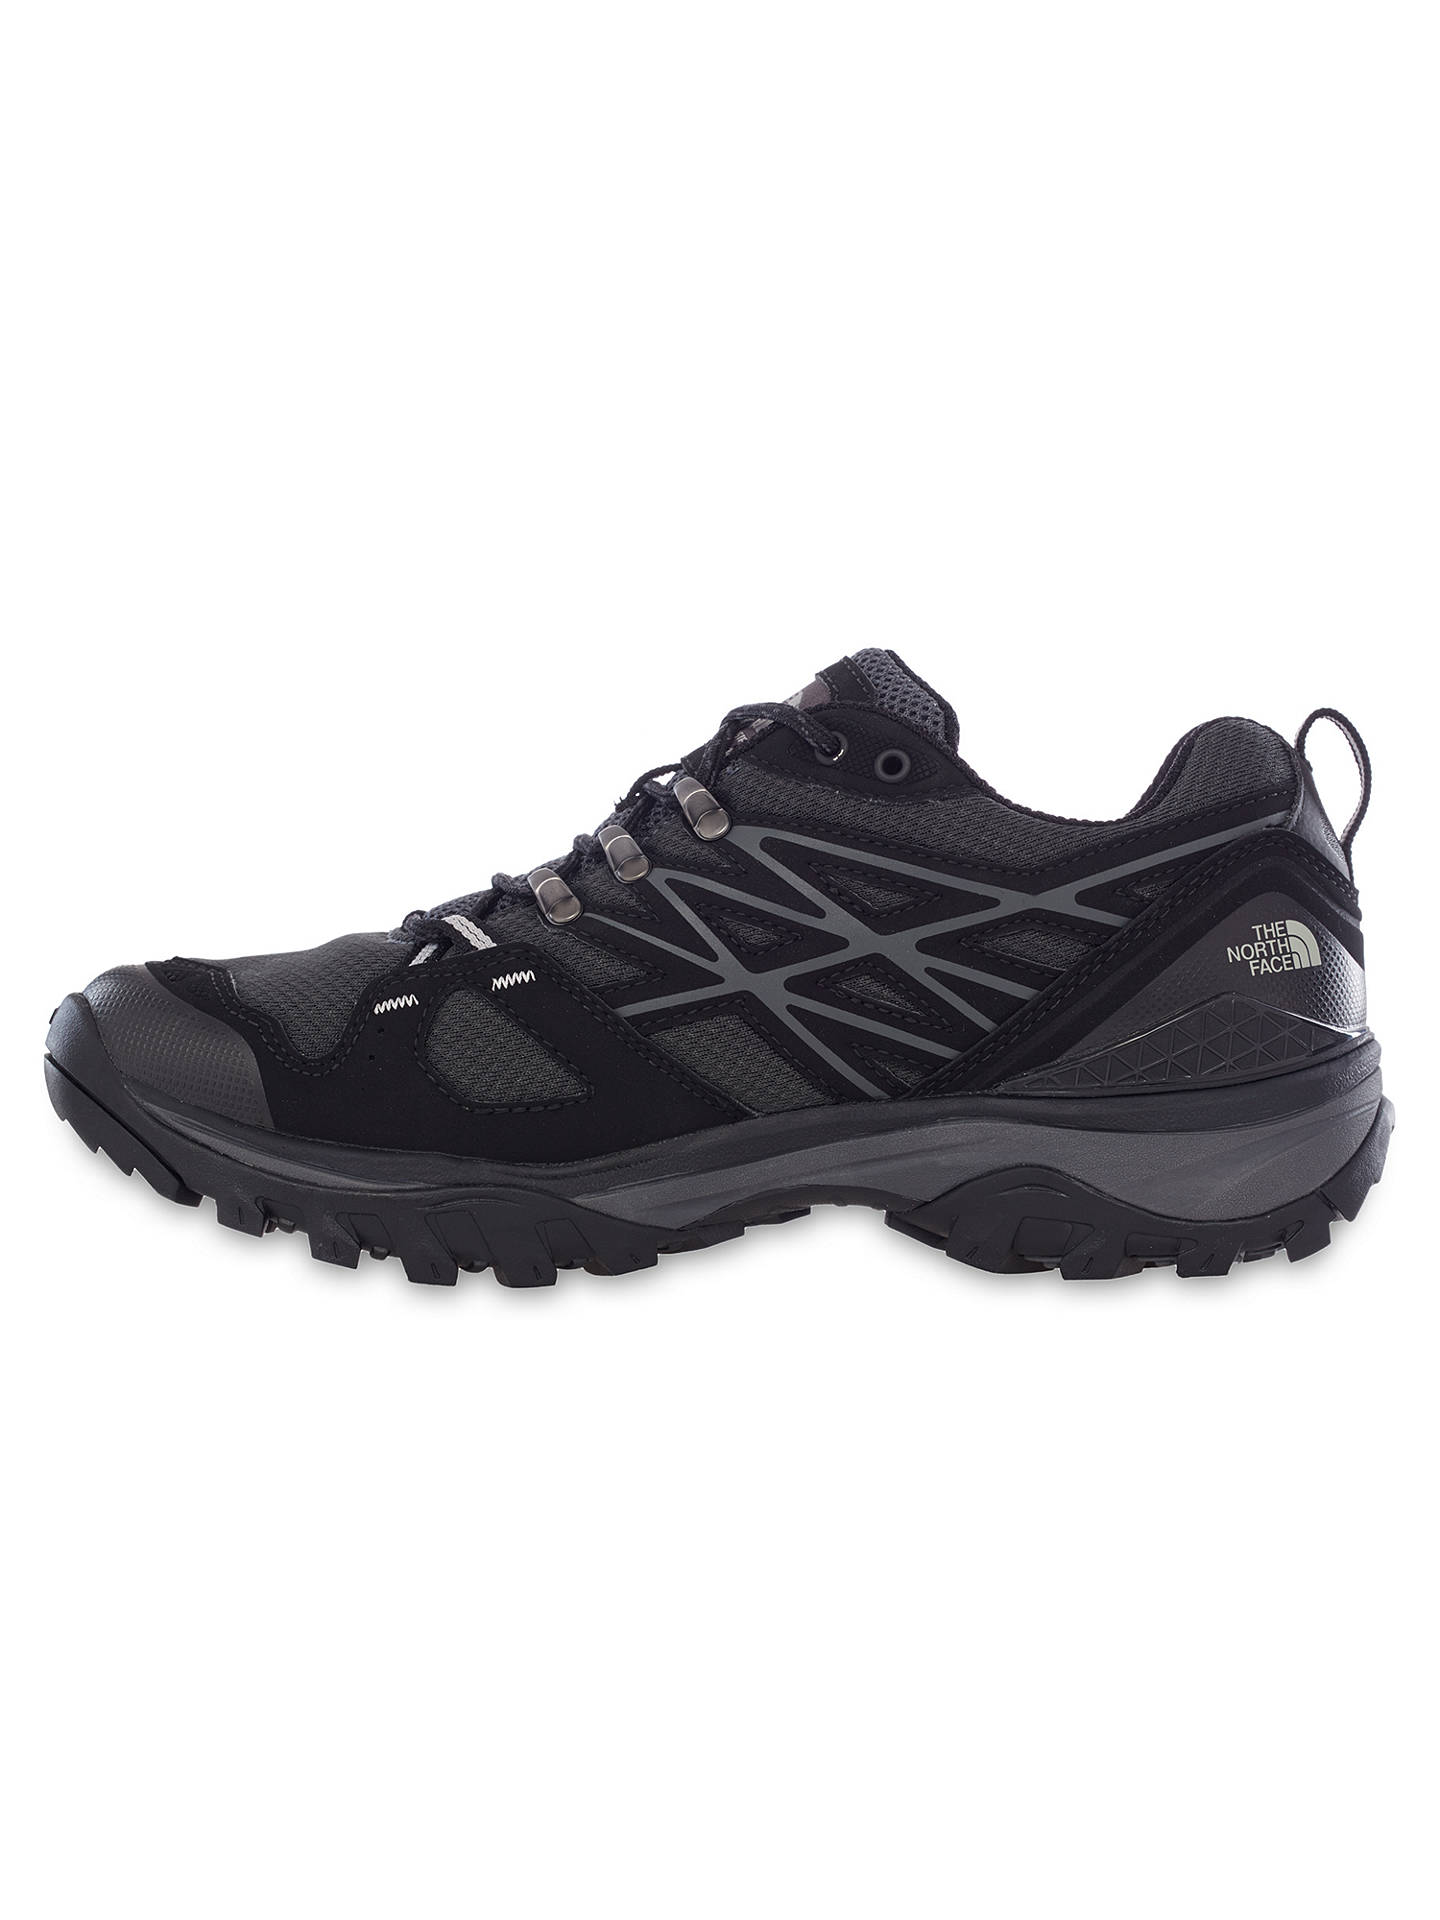 048cd16df The North Face Hedgehog Fastpack GTX Men's Hiking Boots, TNF Black ...